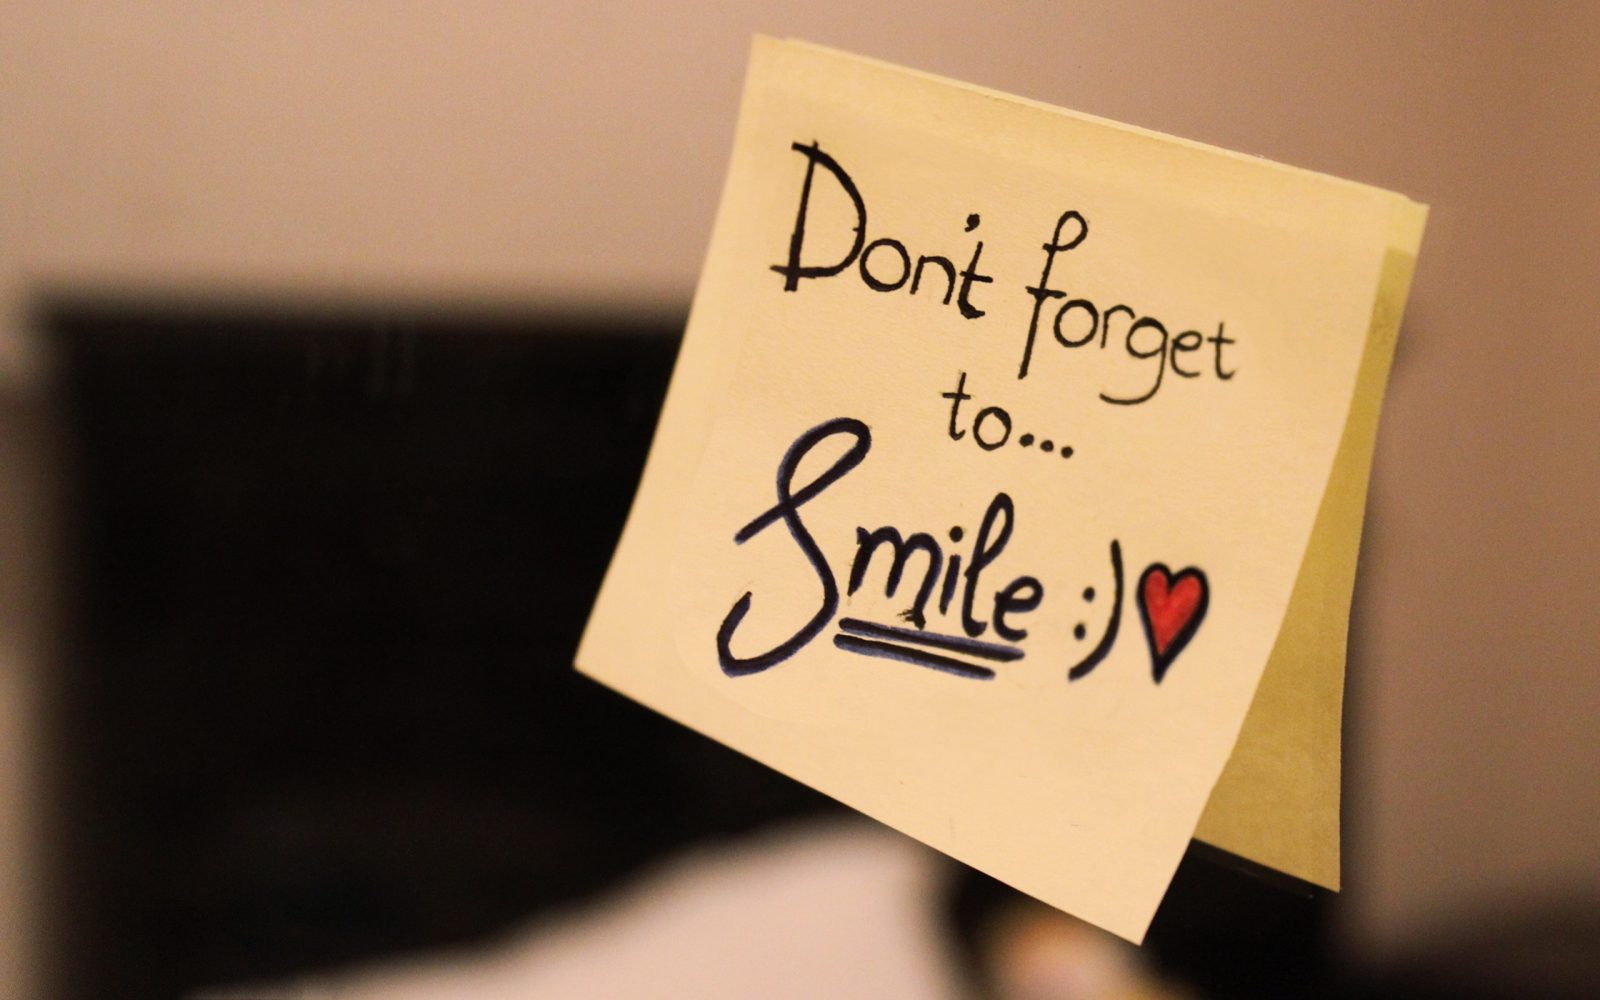 5 REASONS TO KEEP ON SMILING